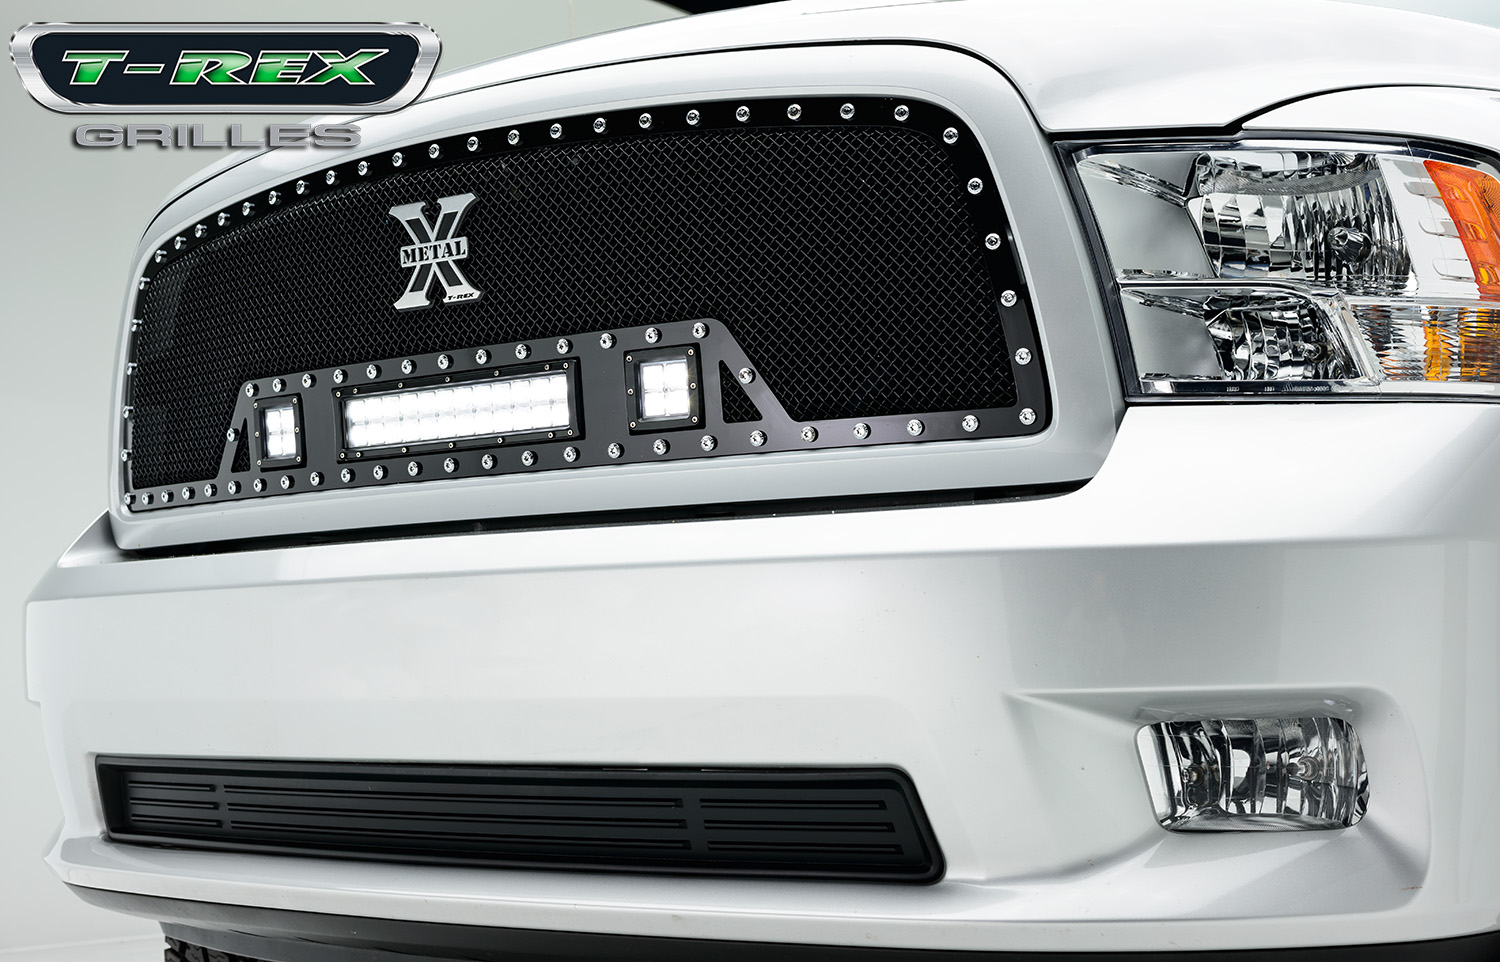 Grille Grills Grill And More Grills